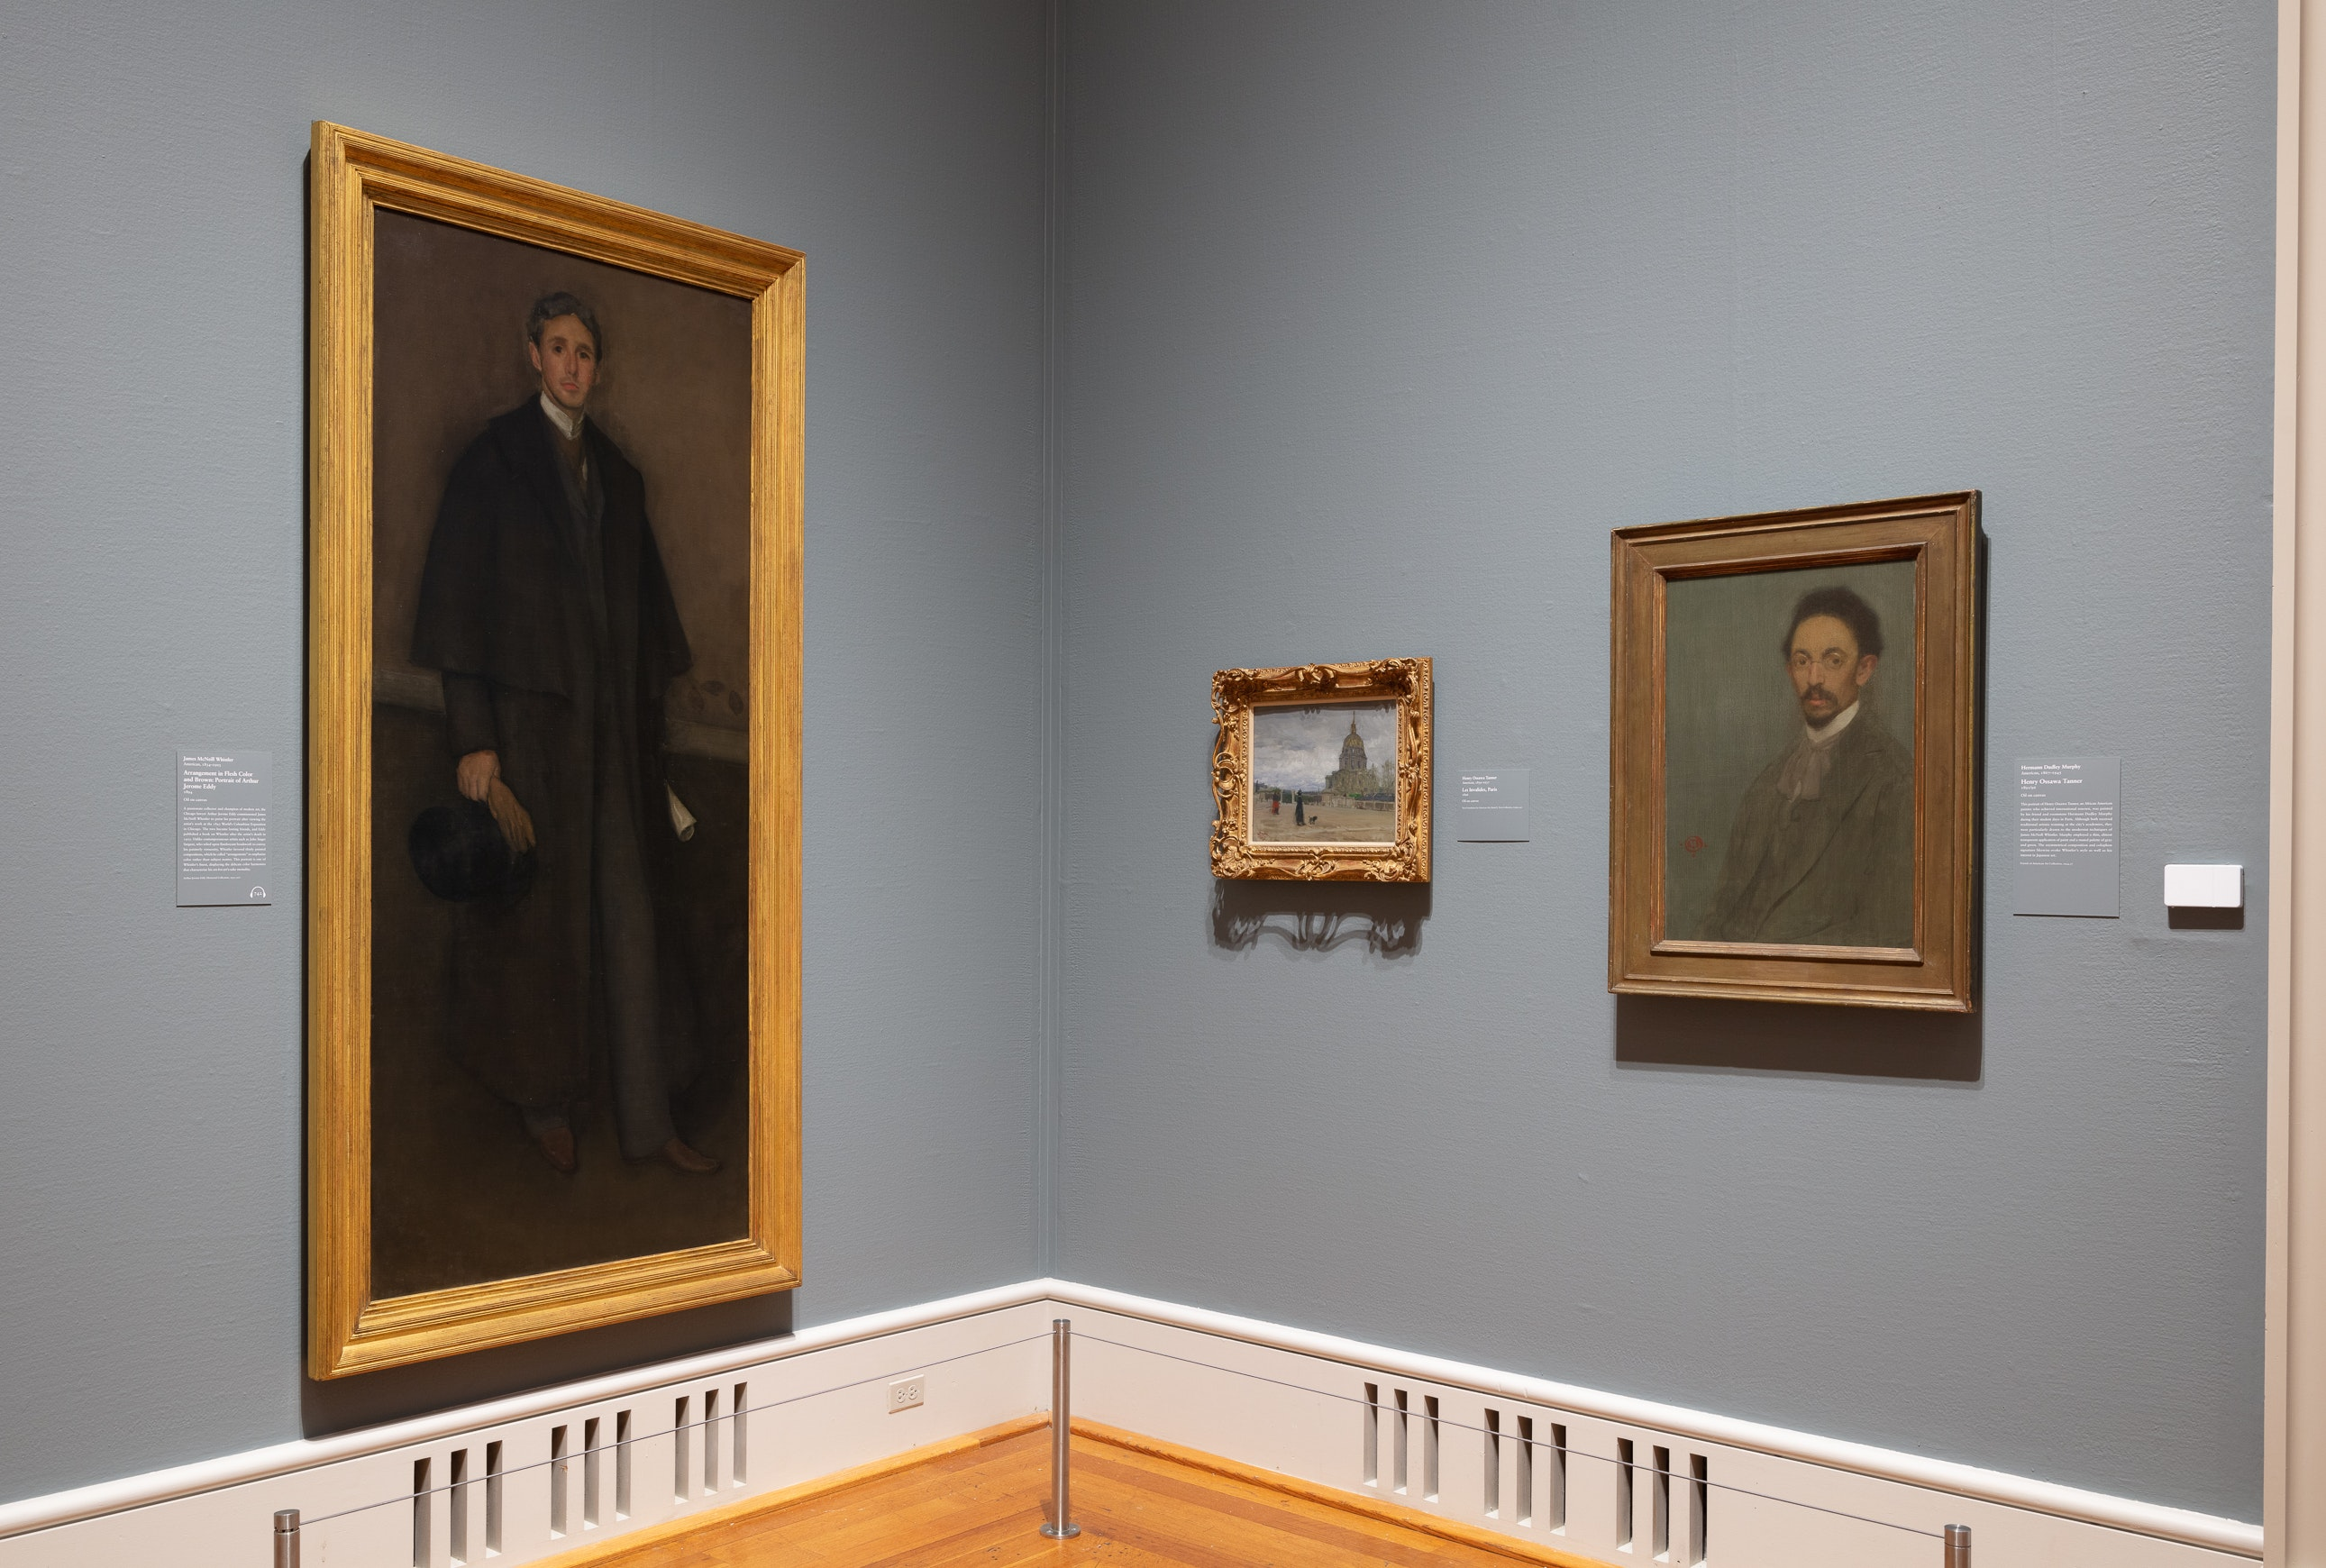 Corner of Gallery 273 featuring Whistler's portrait of Arthur Jerome Eddy and Murphy's portrait of Henry Ossawa Tanner